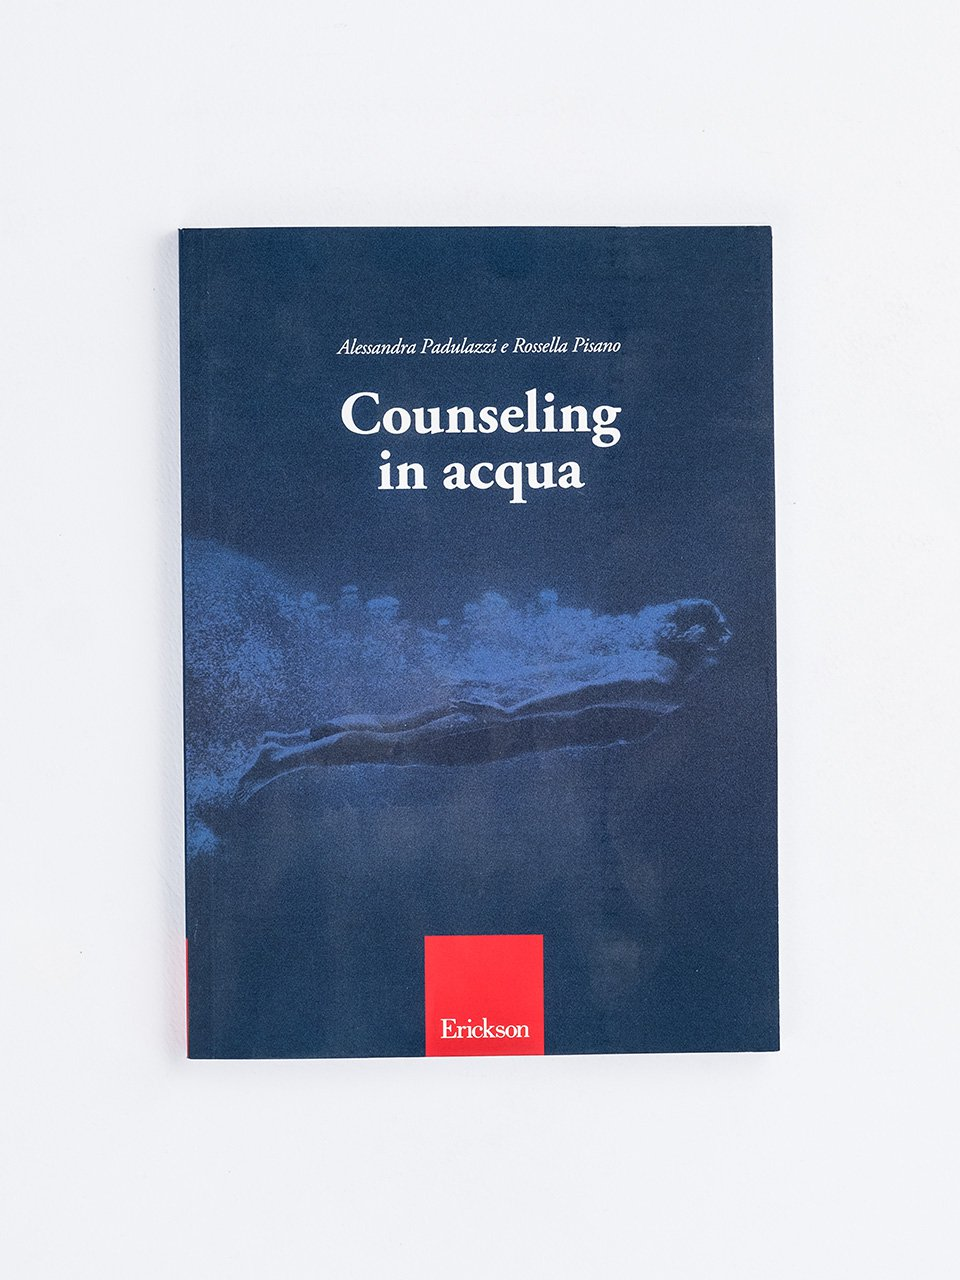 Counseling in acqua - Counselor - Erickson